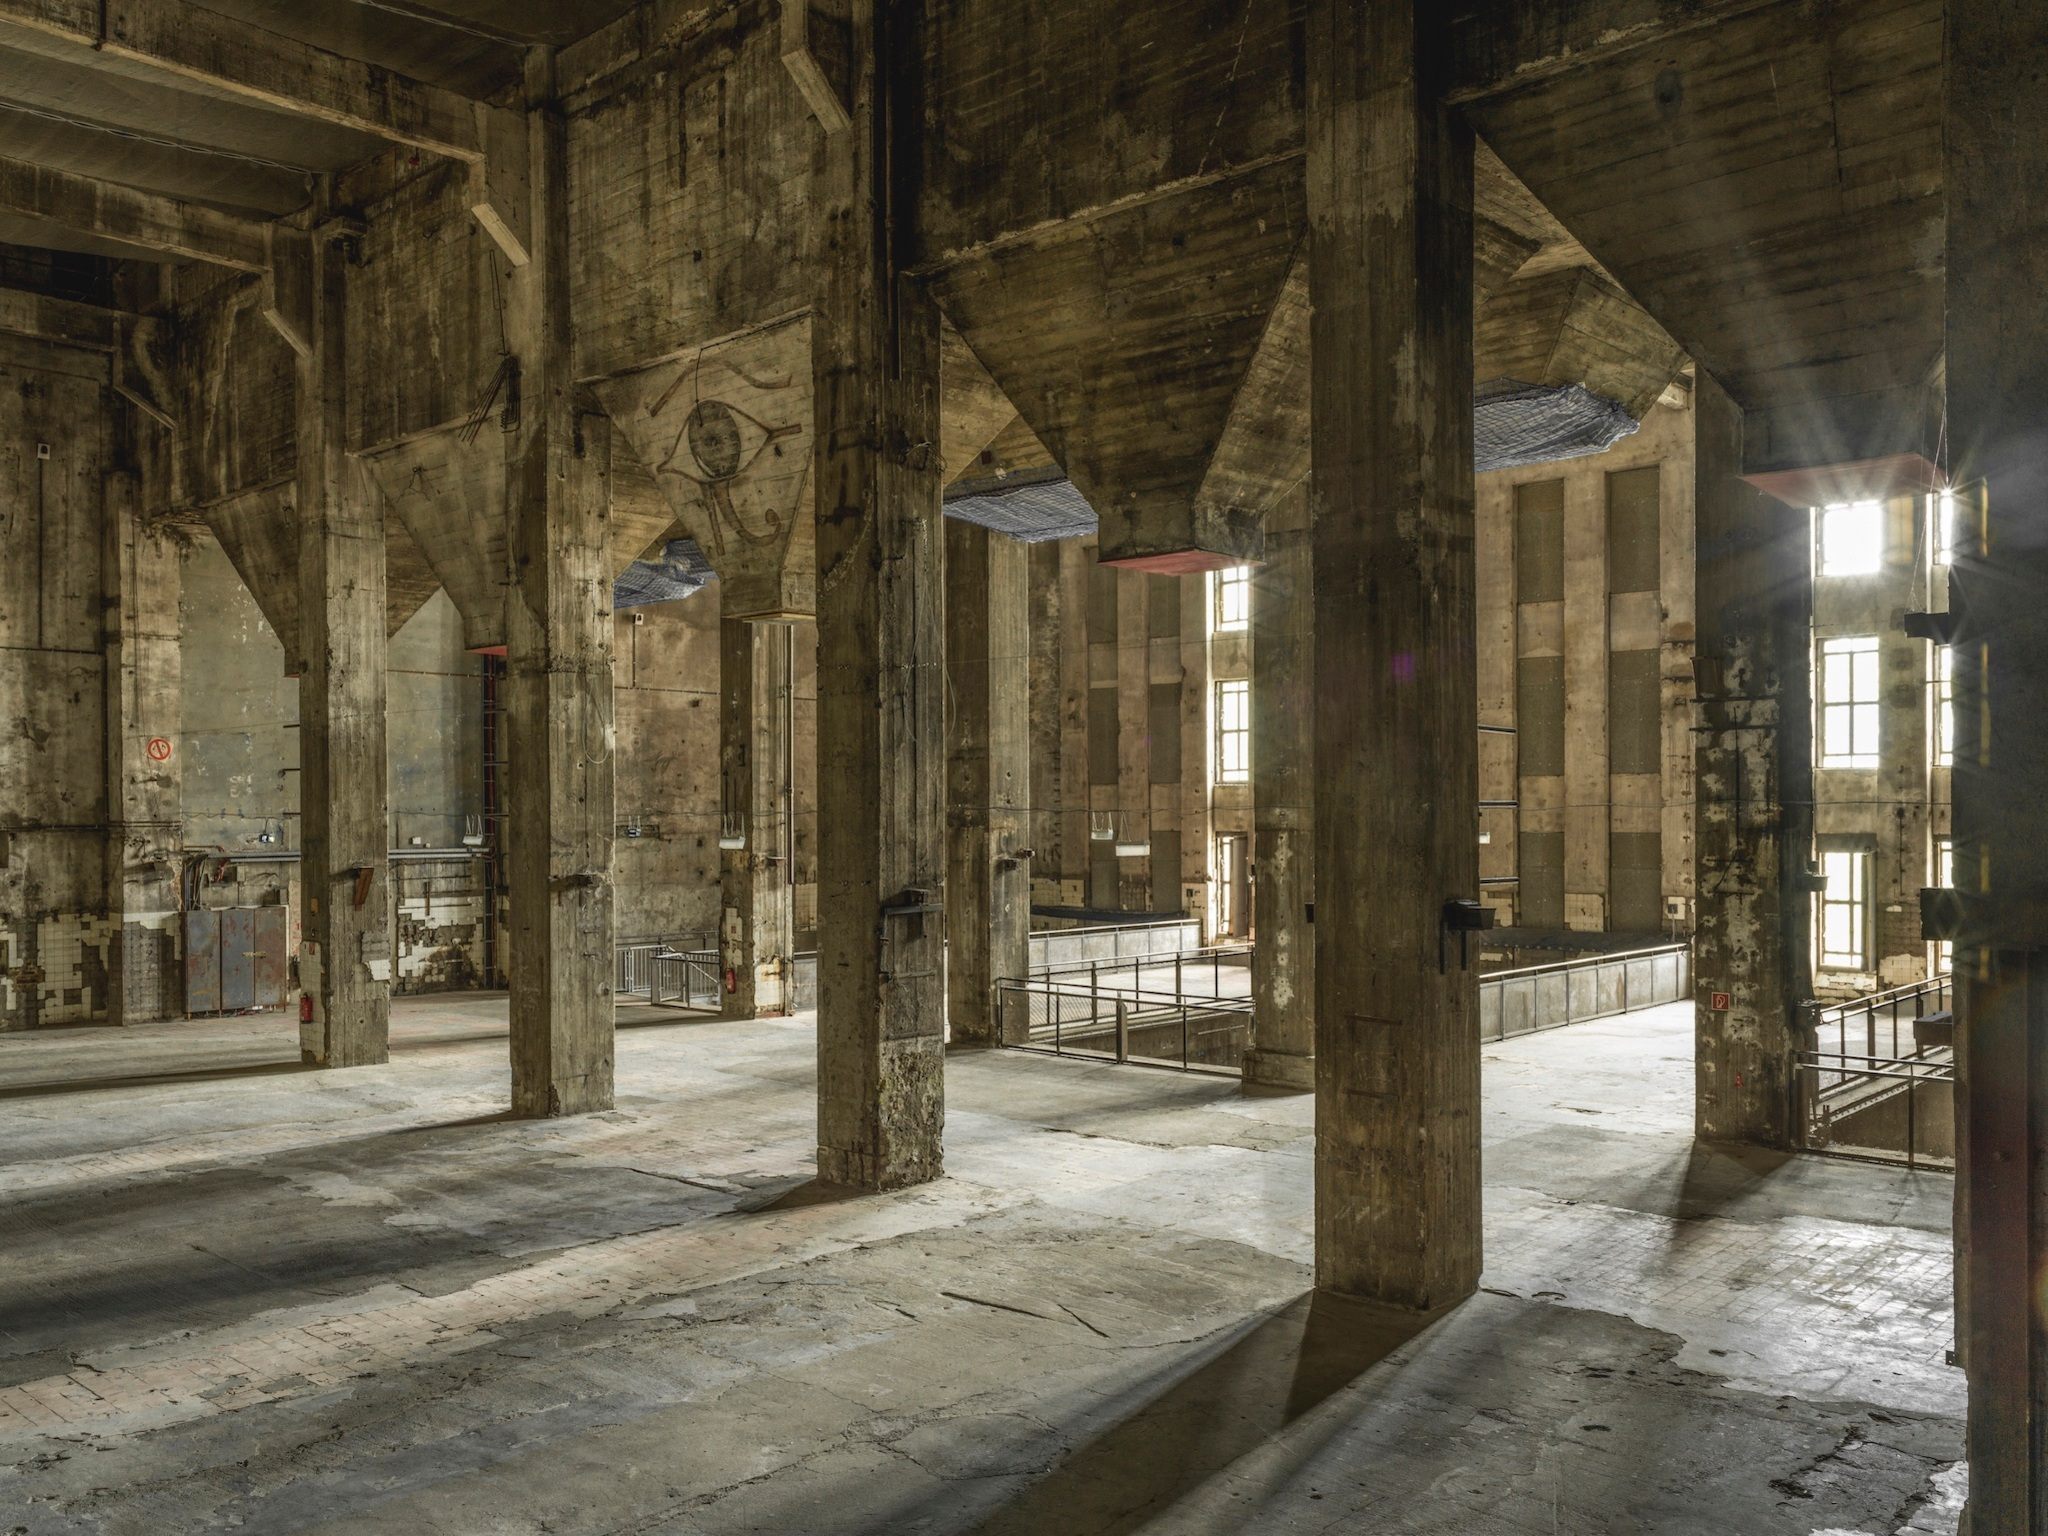 You can finally get into Berghain, thanks to this sound art installation